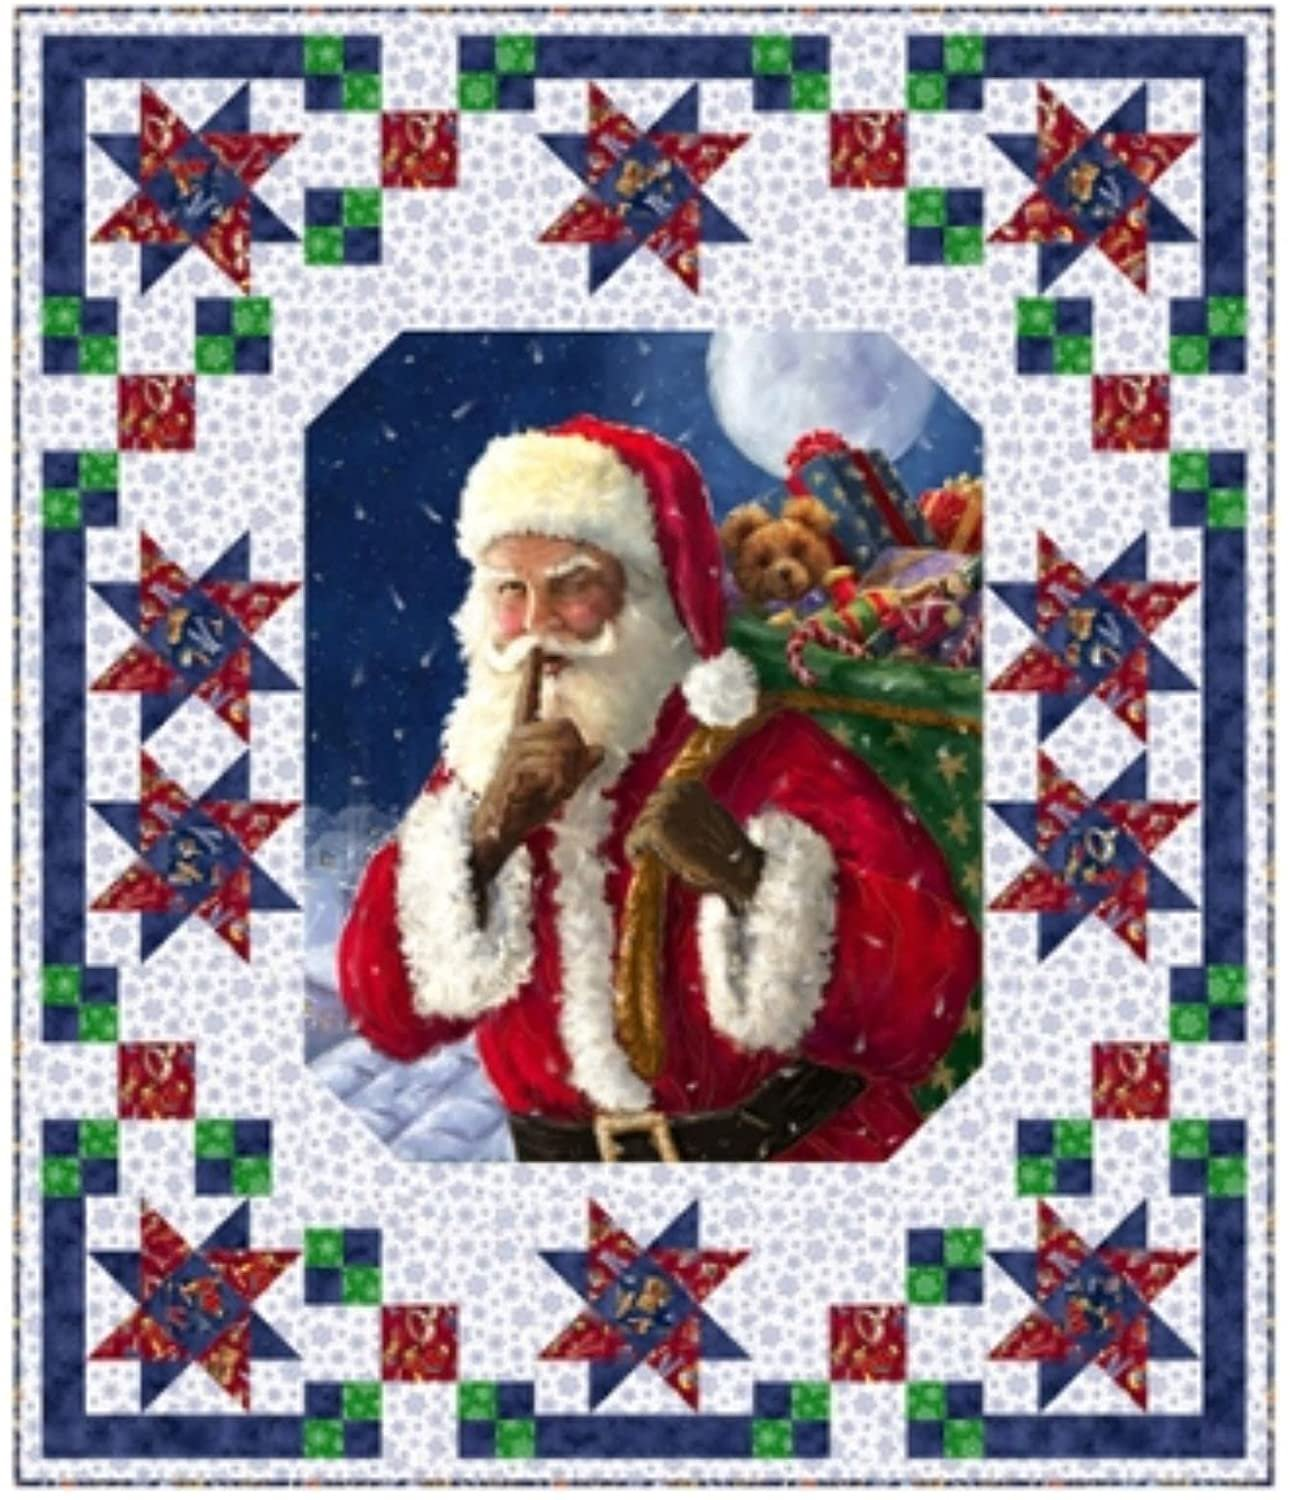 Santa Stars Quilt kit by Pine Tree Country Quilts for QT Fabrics KIT 4012A